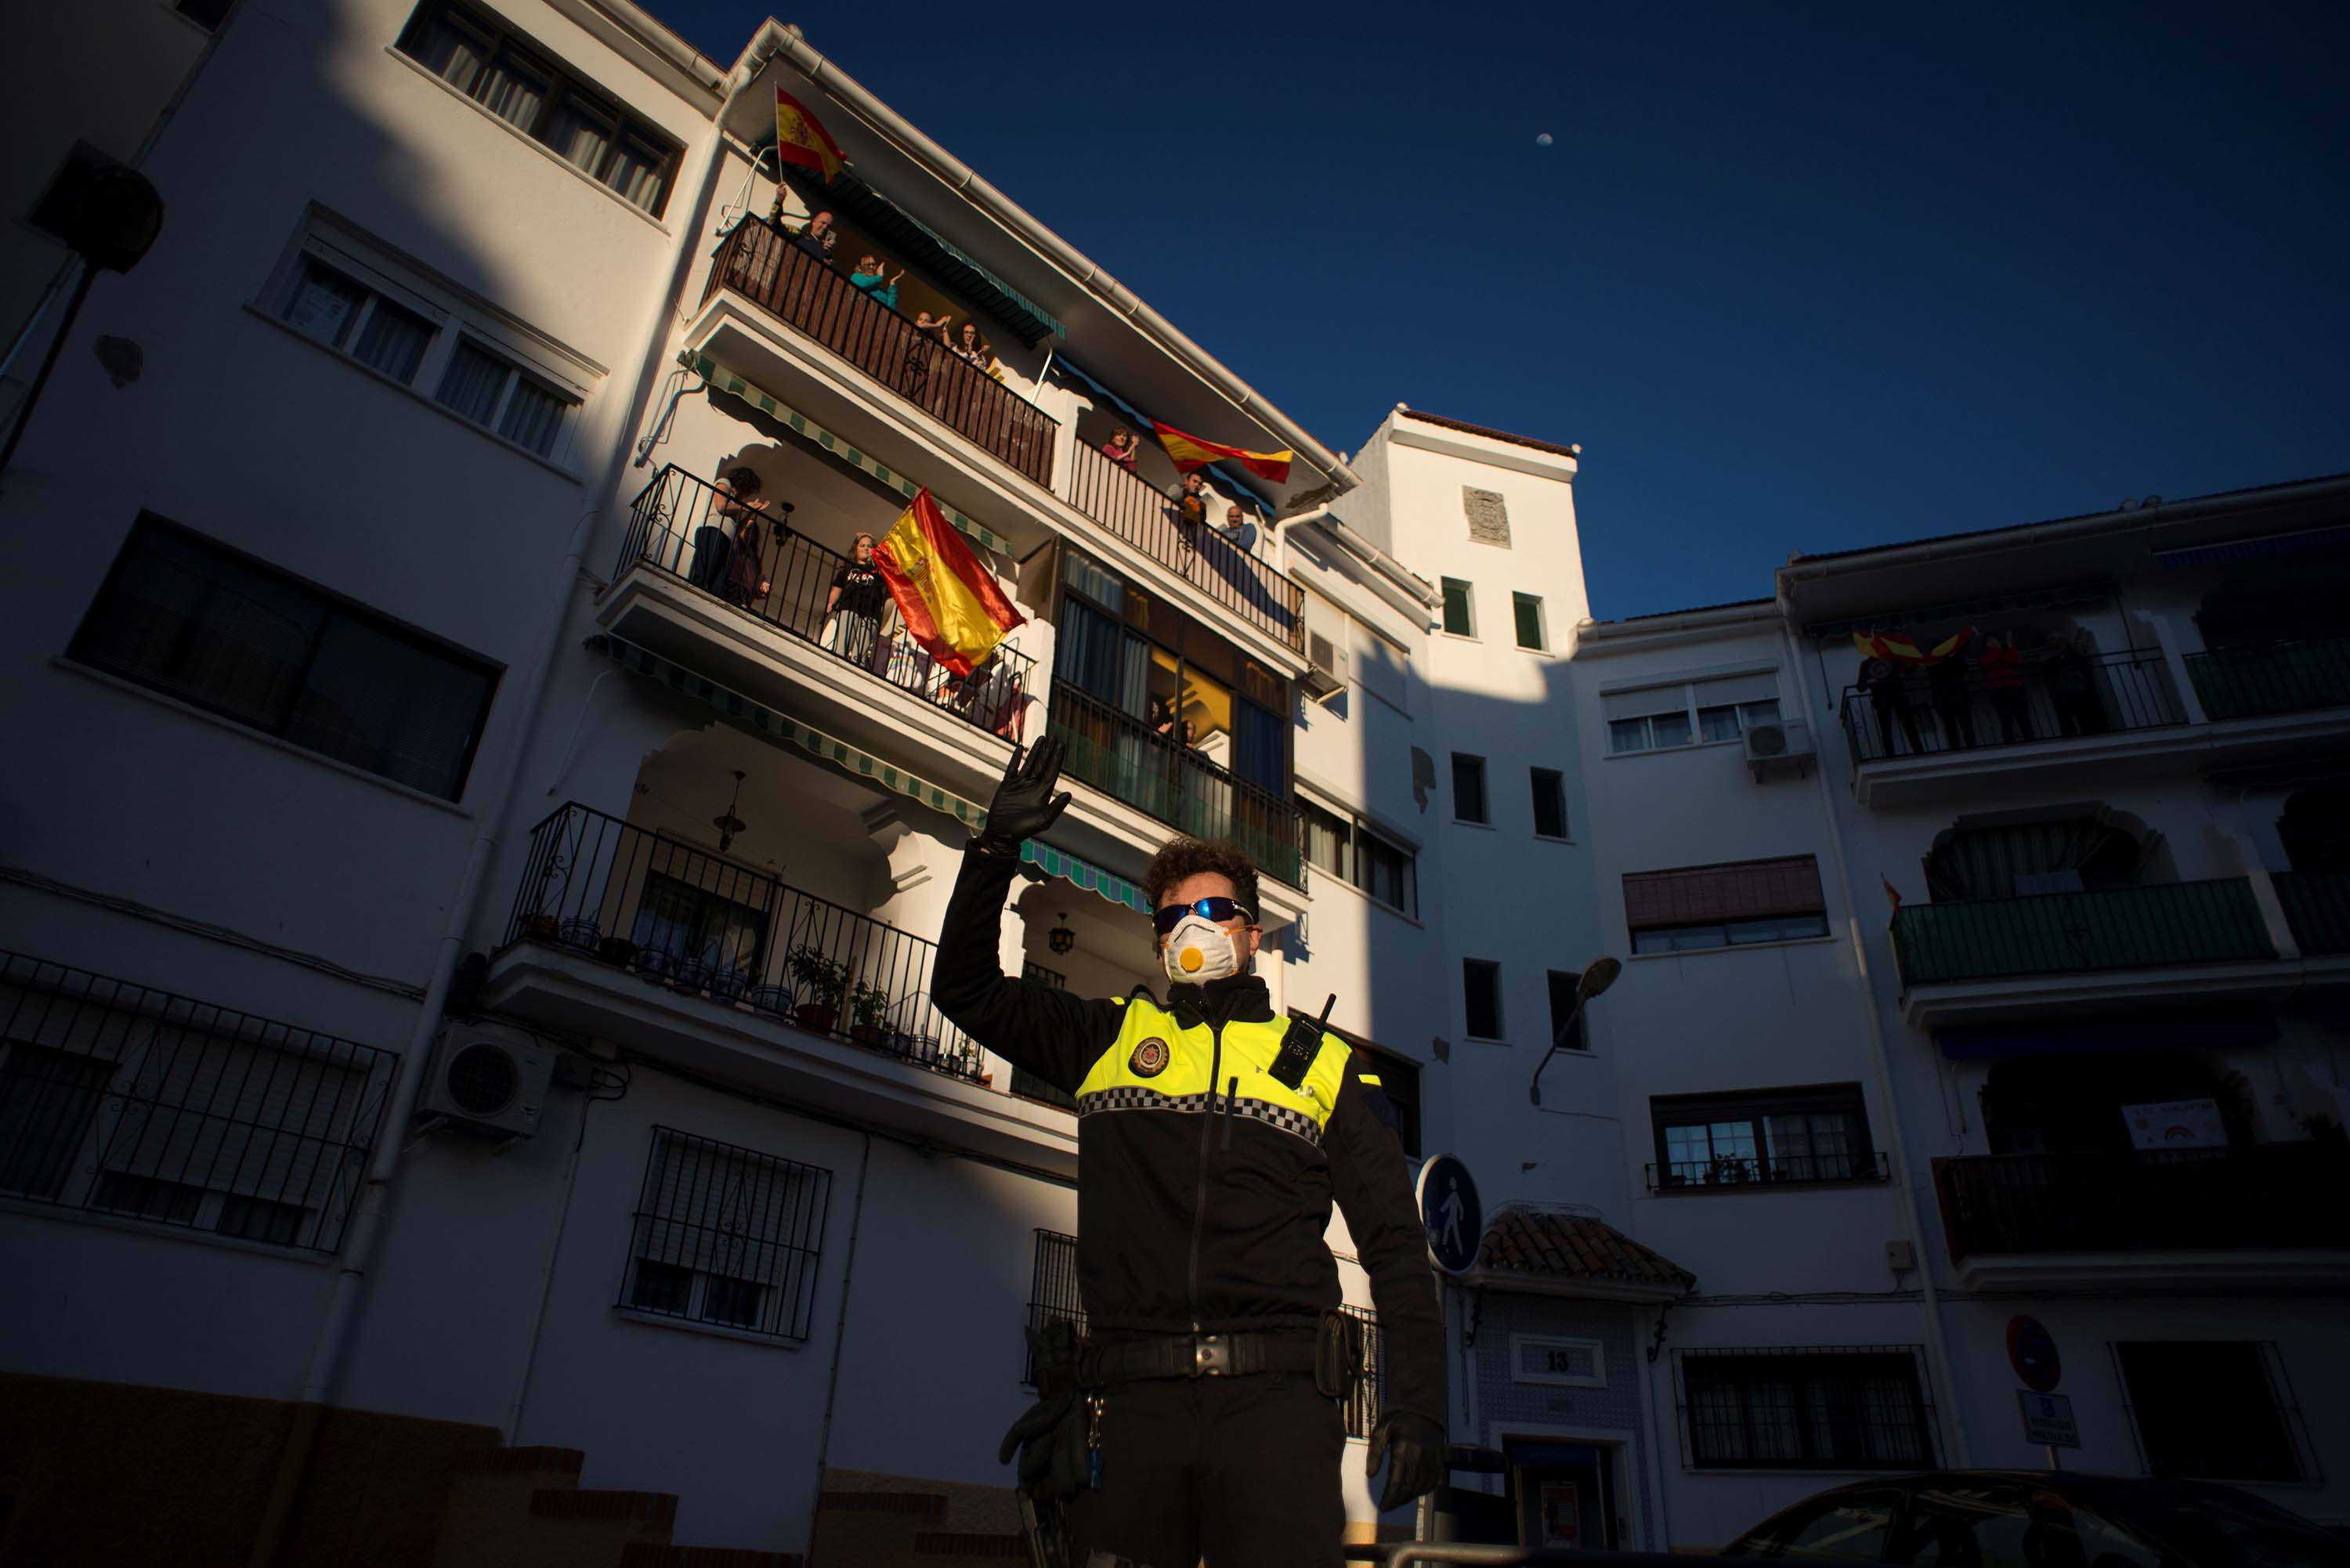 A police officer waves as people applaud to thank healthcare workers dealing with the coronavirus outbreak in Ronda, Spain, on April 3.